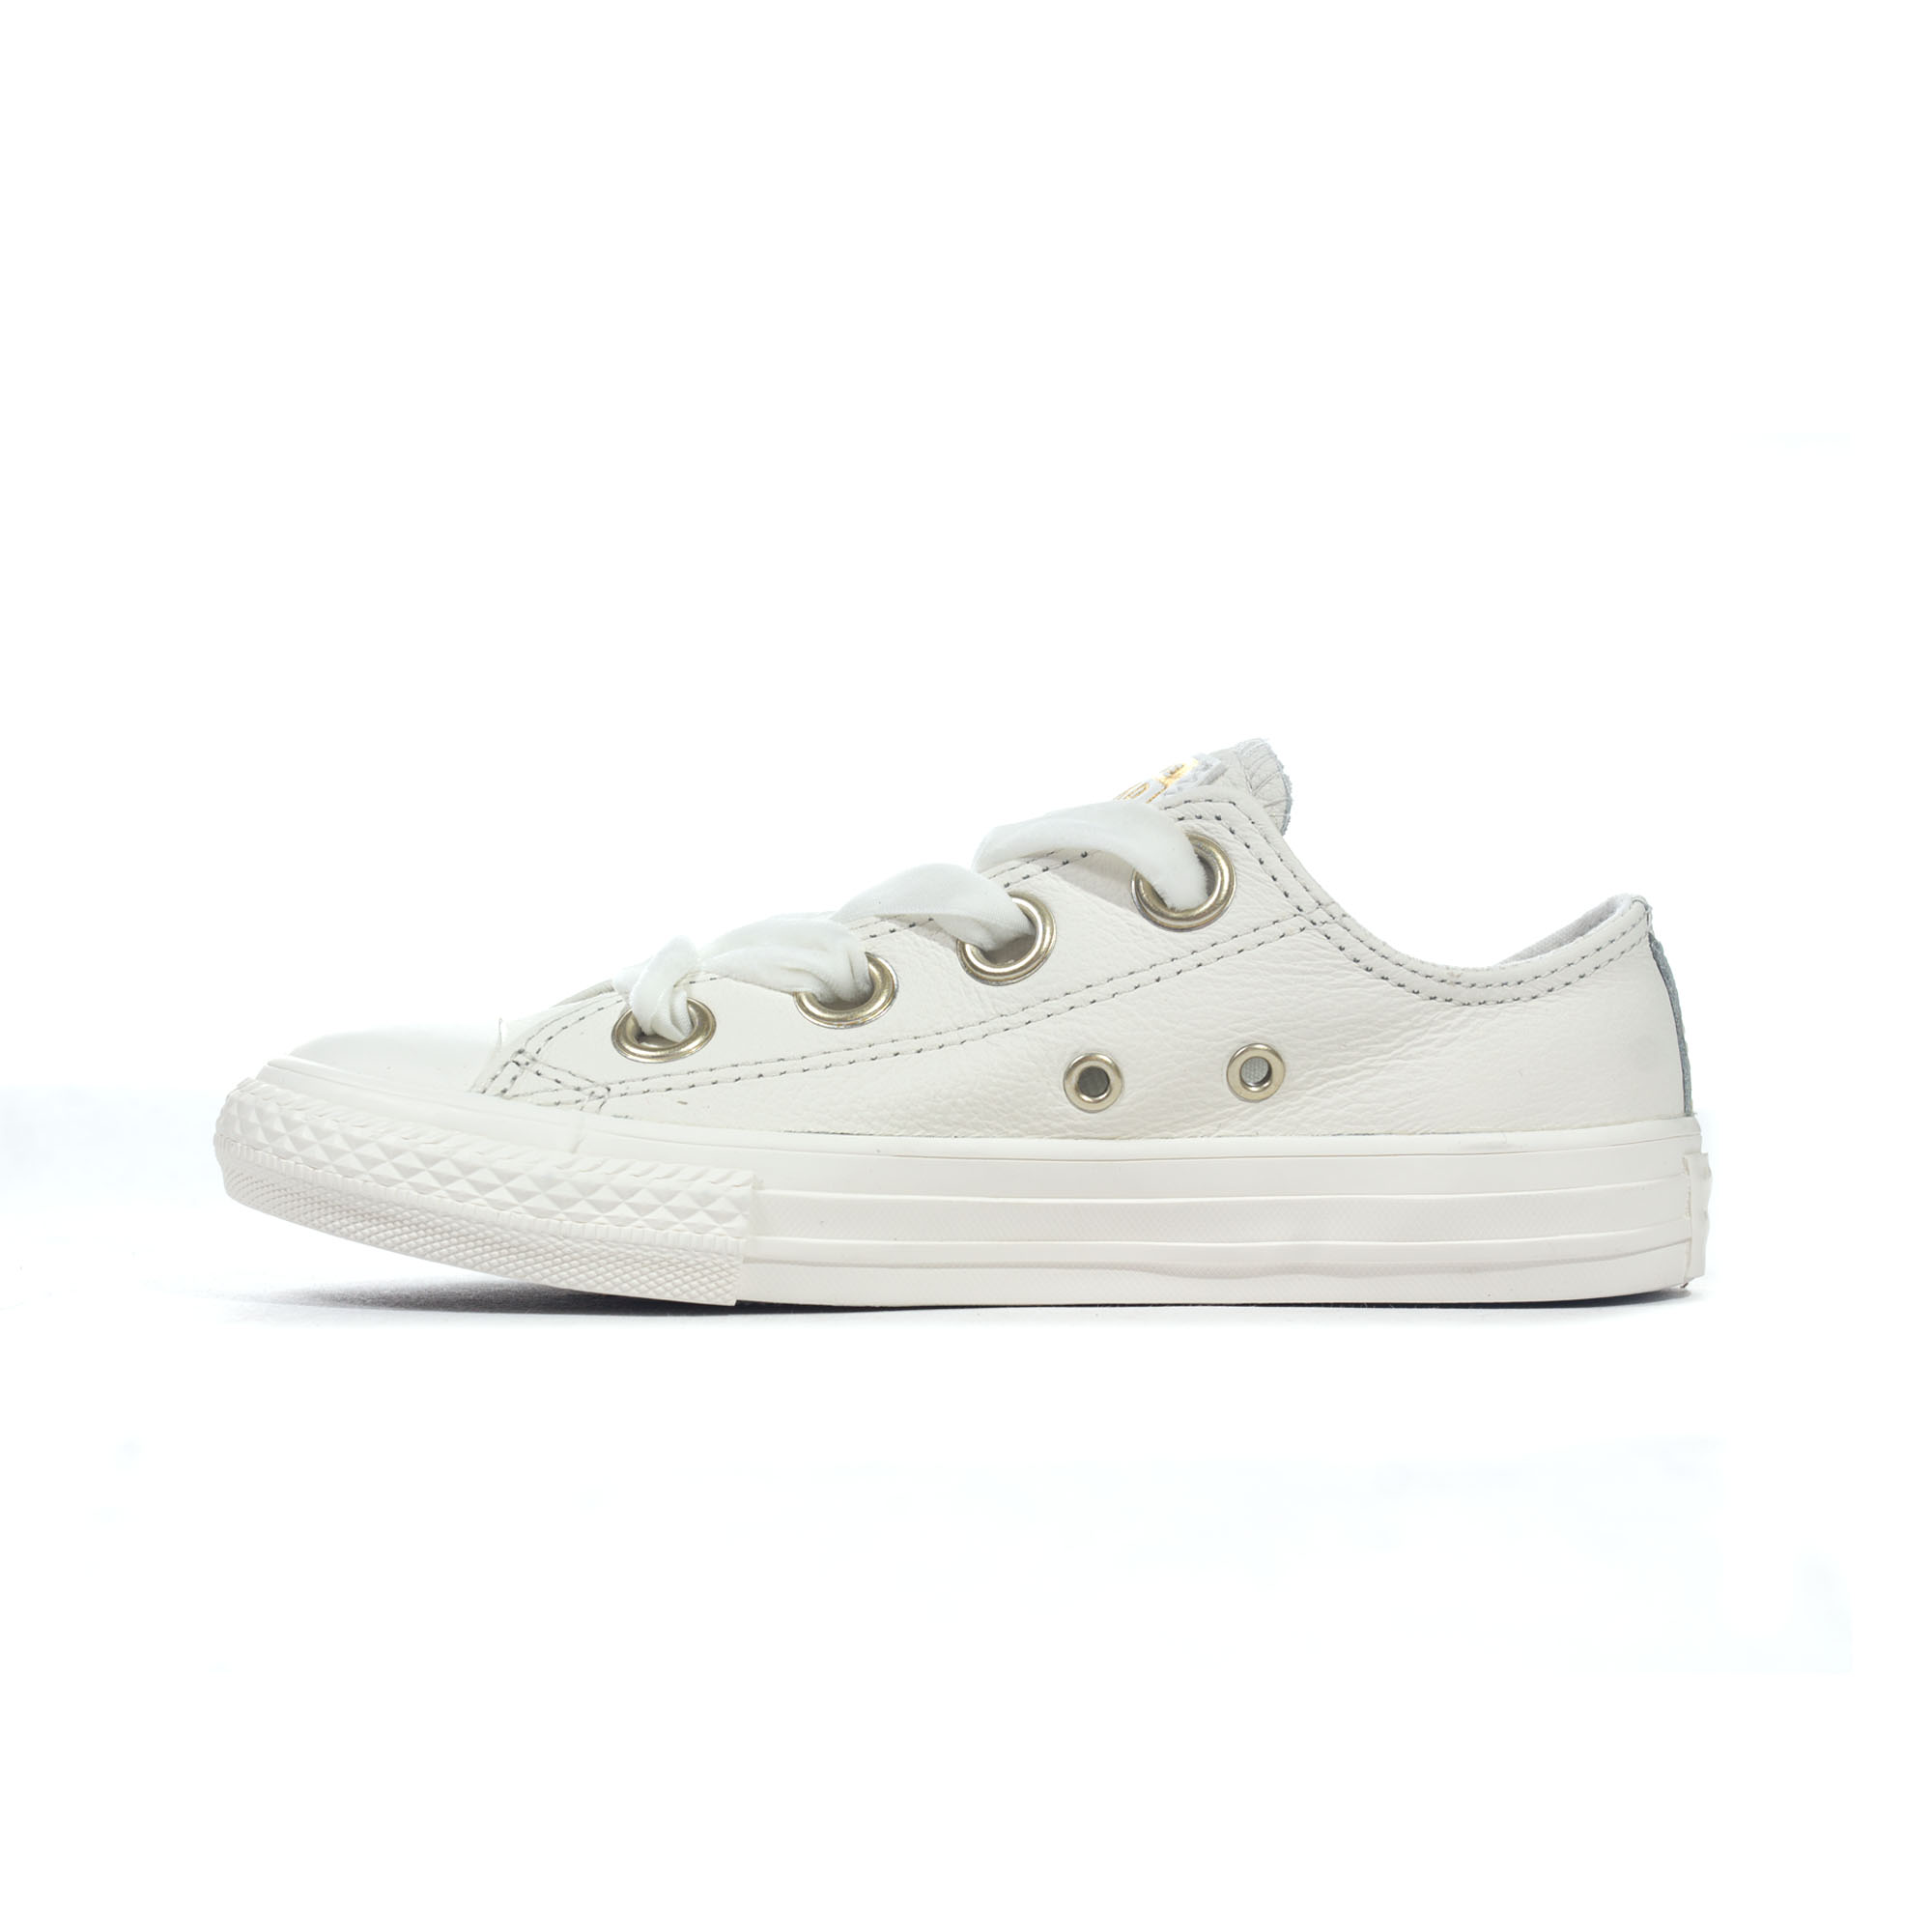 97d47c4e1538 Details about Converse Chuck Taylor All Star Big Eyelets Leather Ox Girls  Trainer Vintage Gold